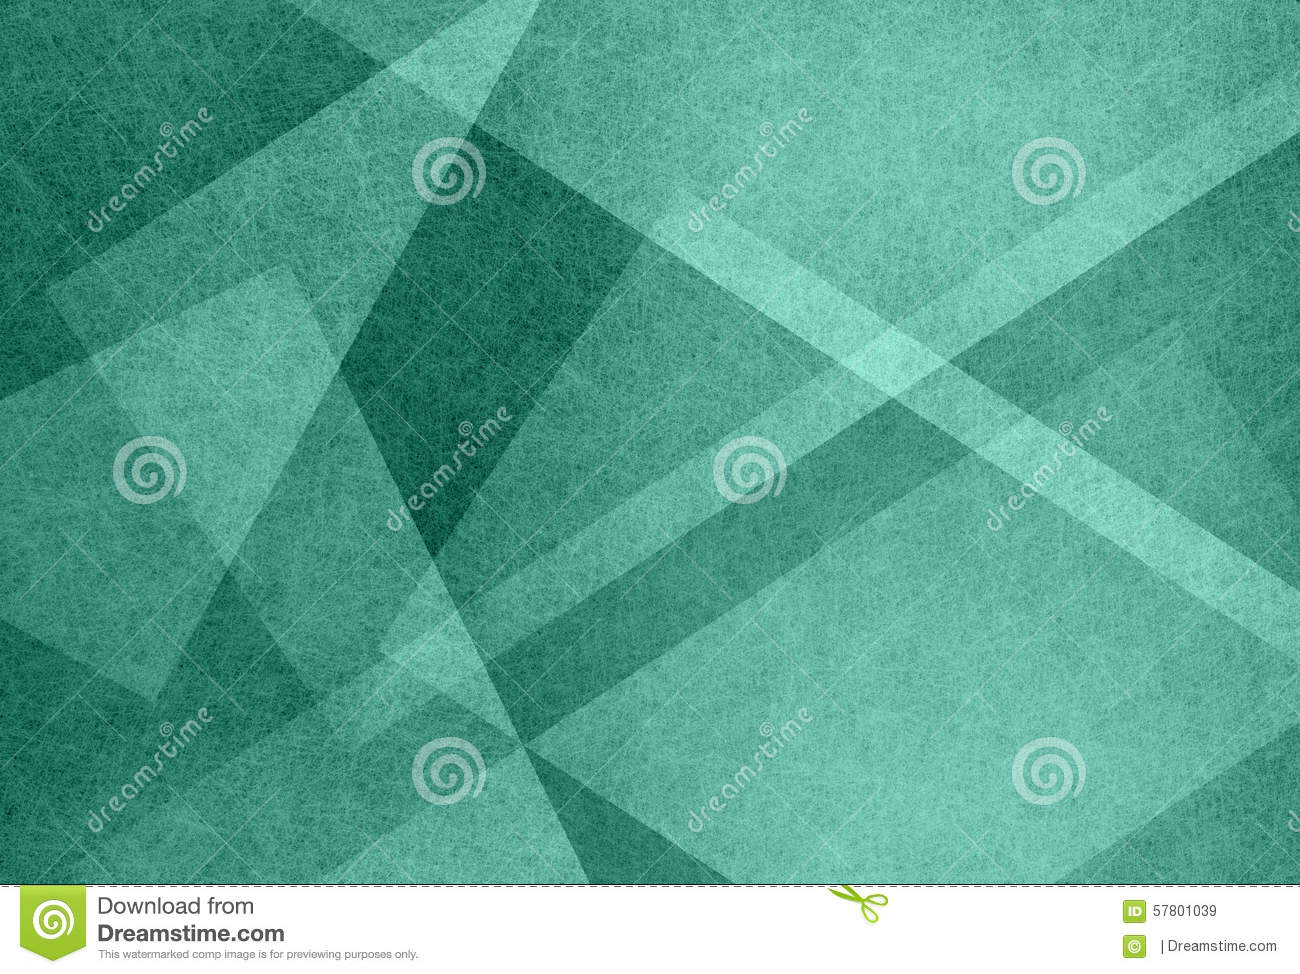 Abstract blue green background with triangle shapes and diagonal line design elements